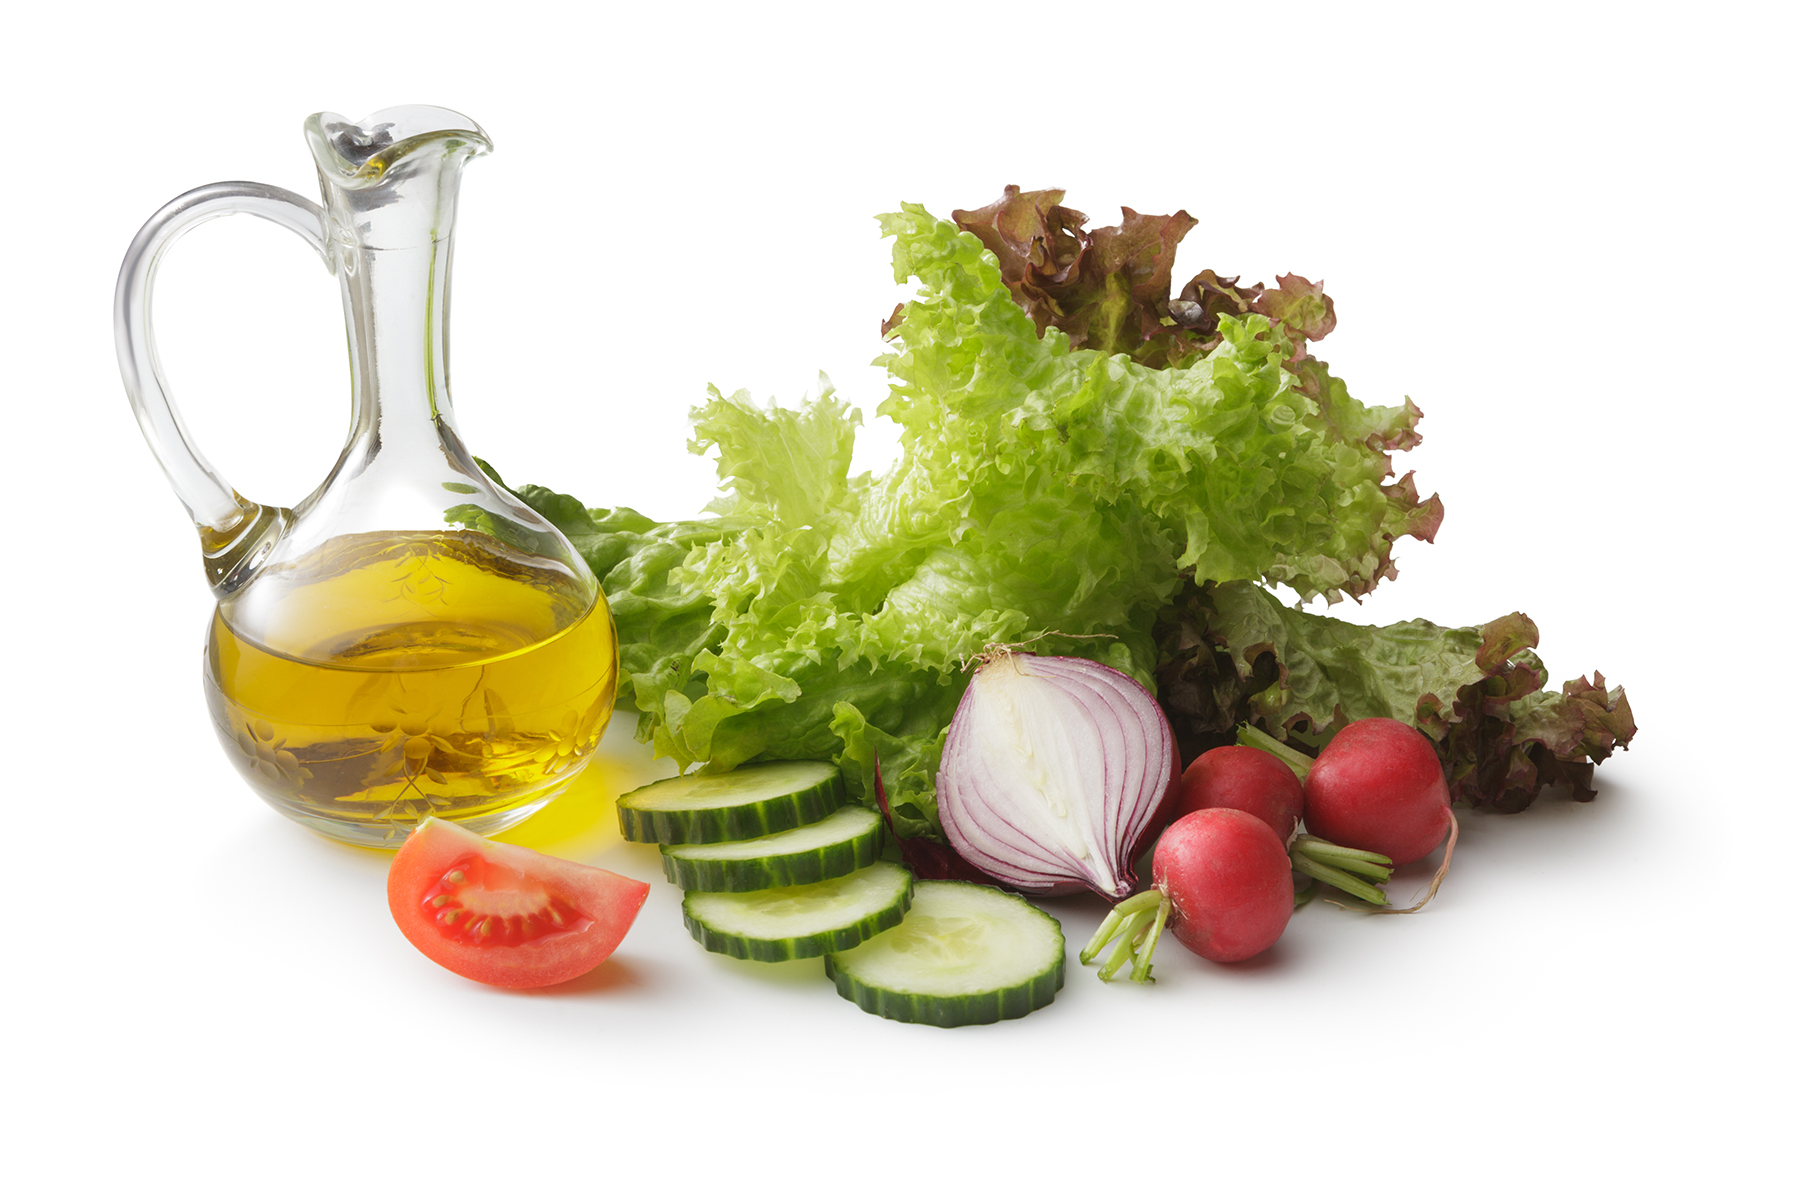 Salad Dressing and Salad Ingredients